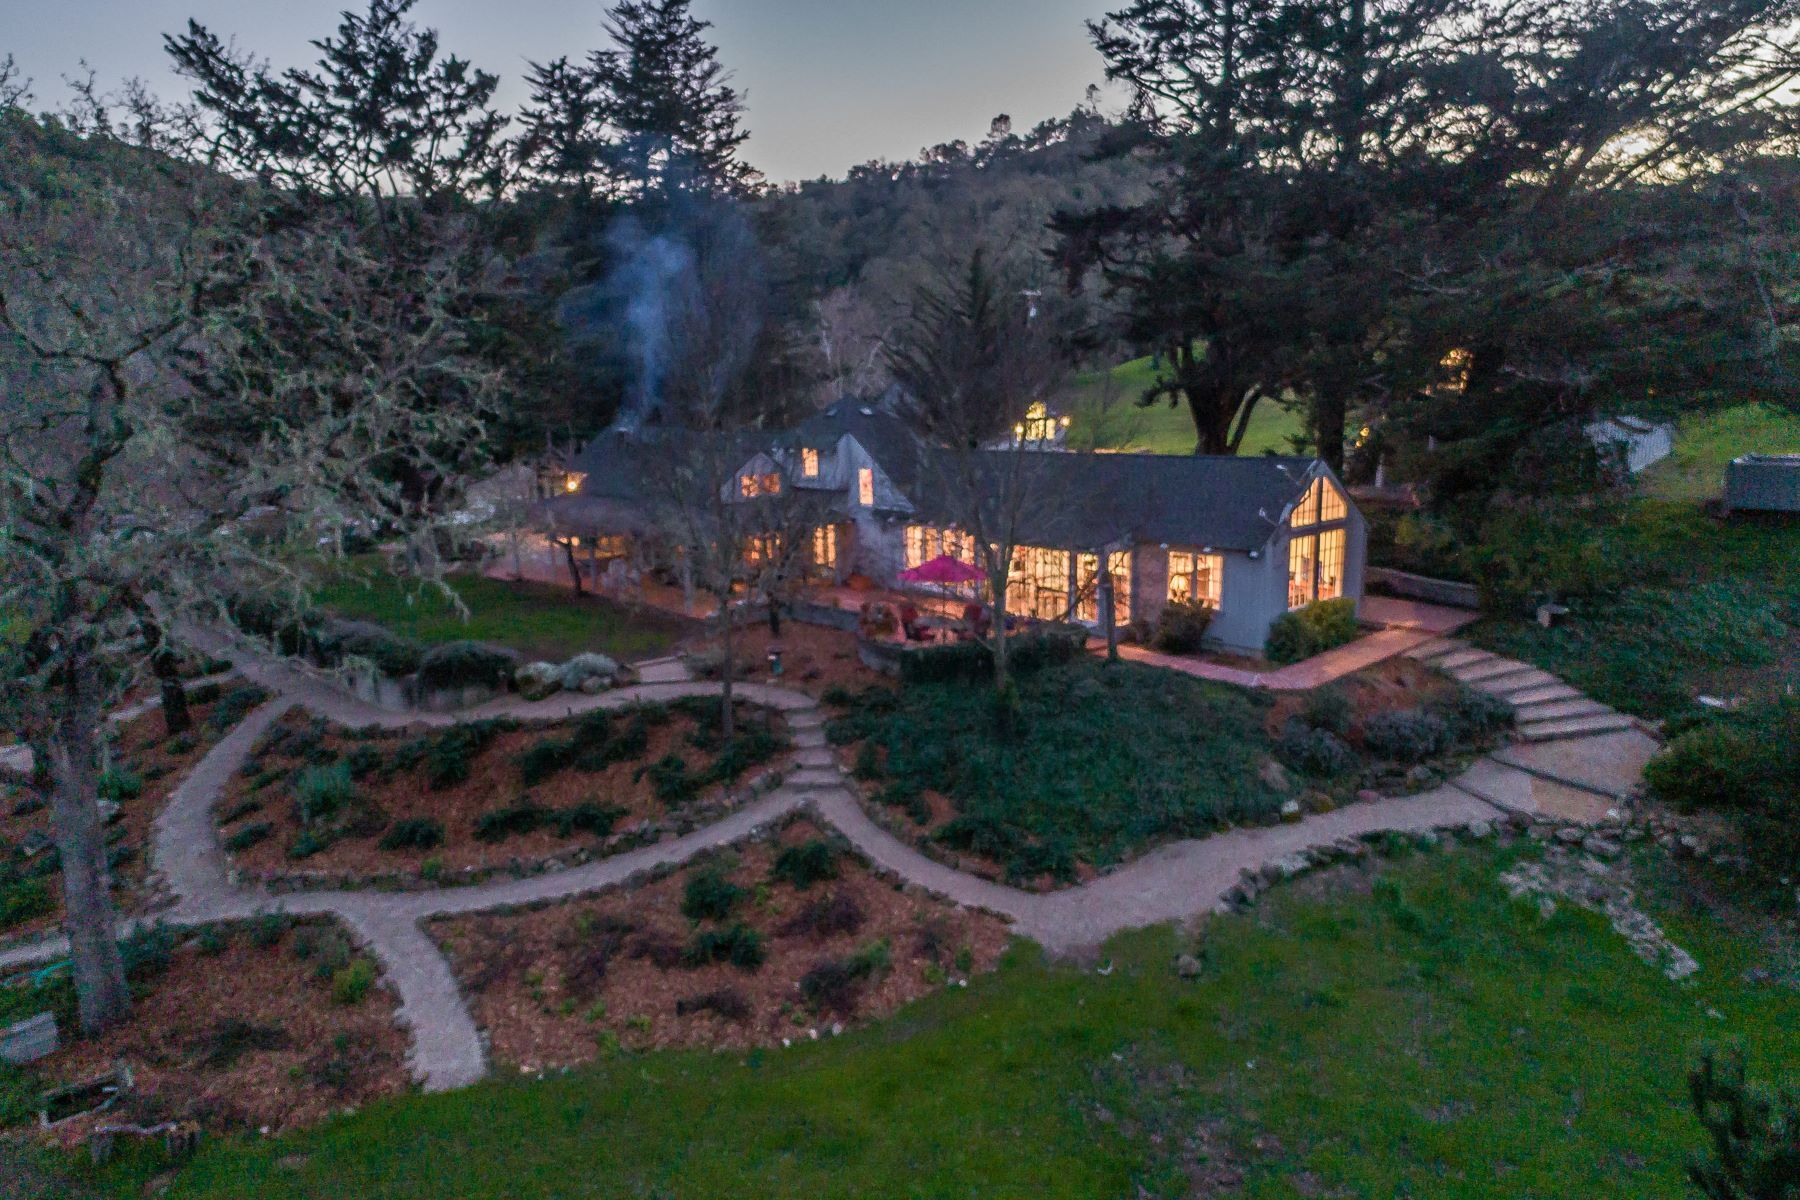 Single Family Homes for Sale at Experience the Extraordinary Tranquility 11610 Santa Rosa Creek Road Templeton, California 93465 United States